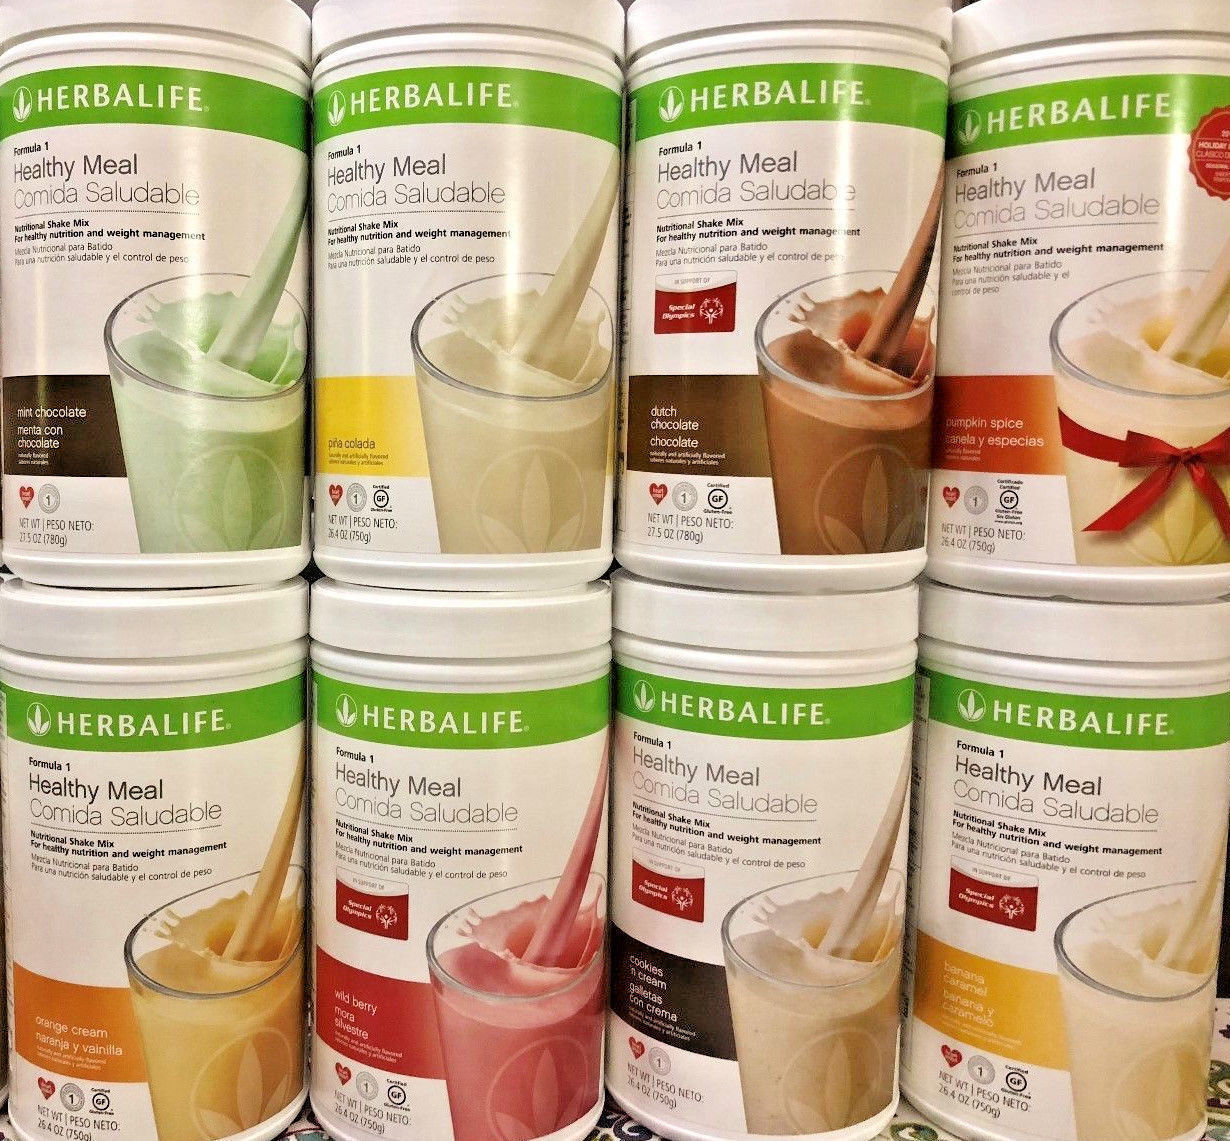 NEW Herbalife Formula 1 Healthy Meal Nutritional Shake Mix 1